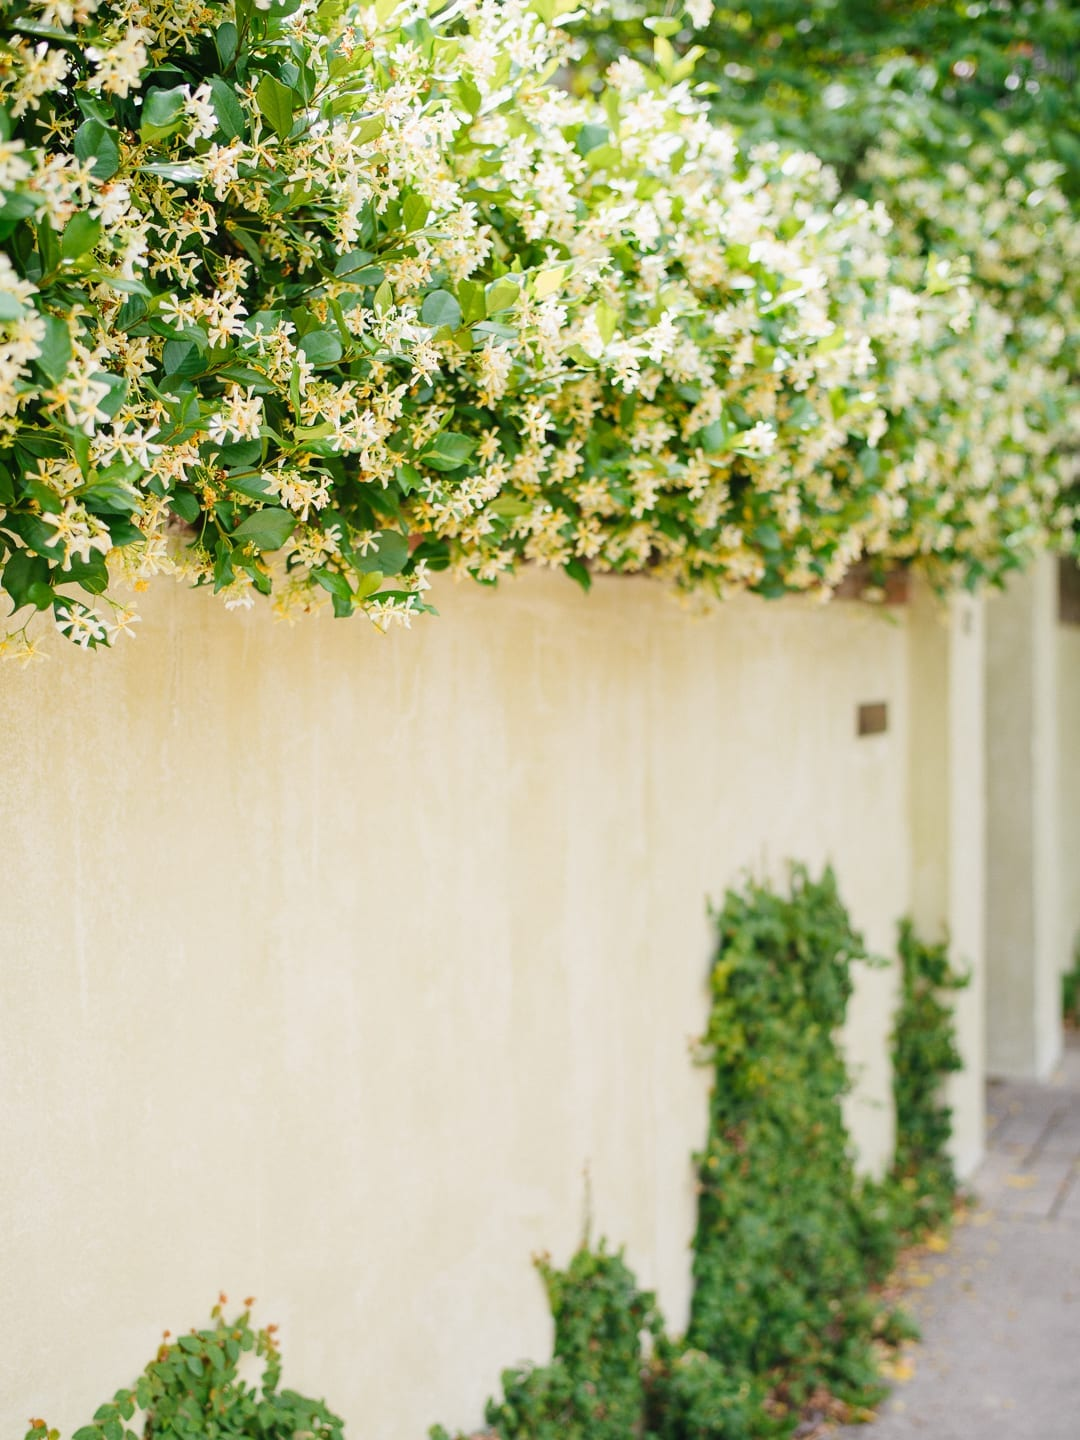 Jasmine Downtown Charleston By Photographer Lucy Cuneo